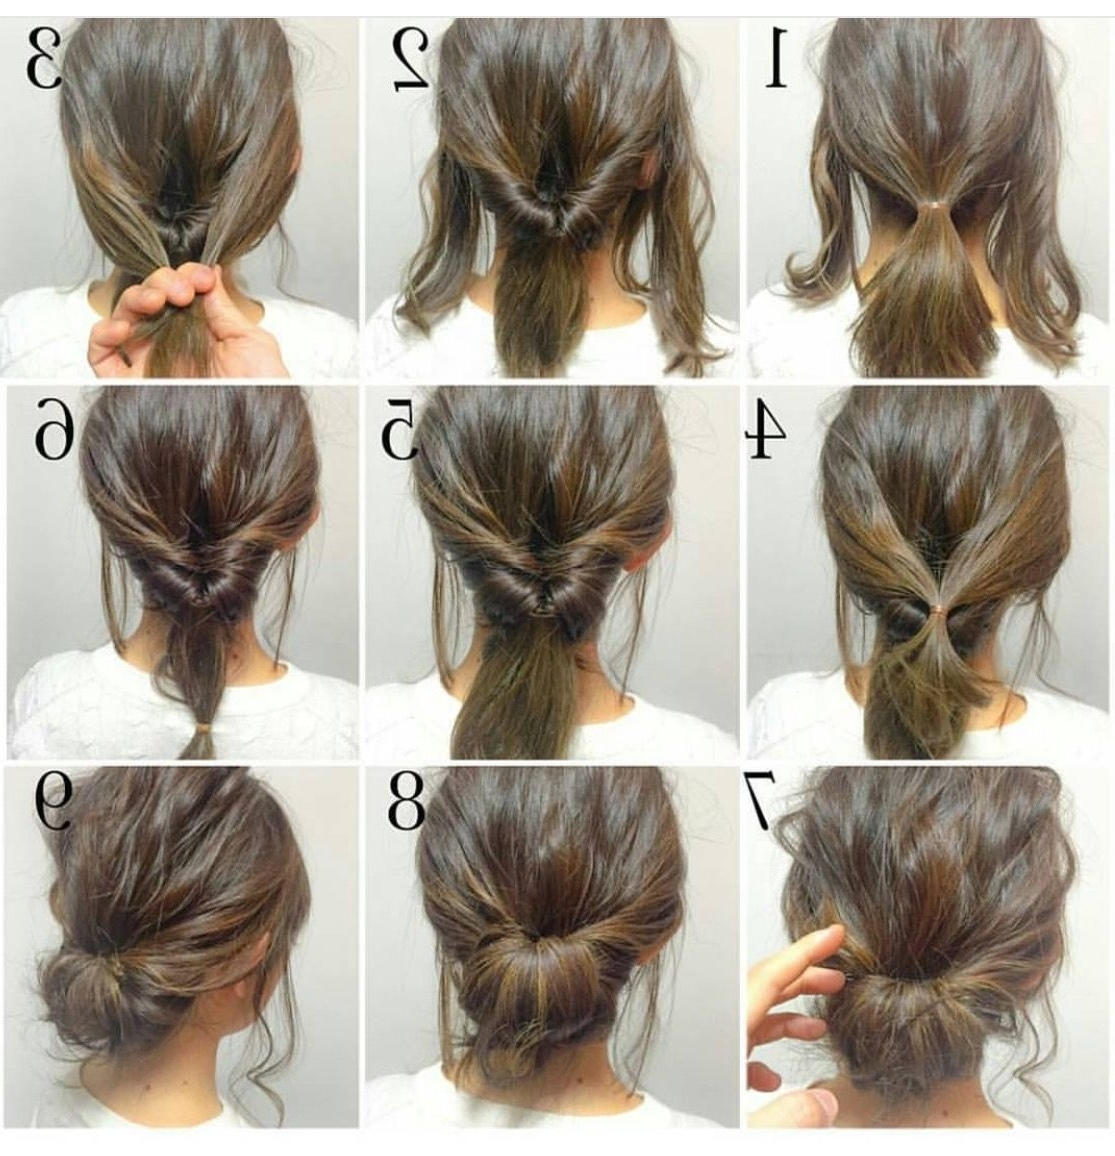 Easy, Hope This Works Out Quick Morning Hair! | • H A I R Pertaining To Quick Easy Short Updo Hairstyles (View 8 of 15)